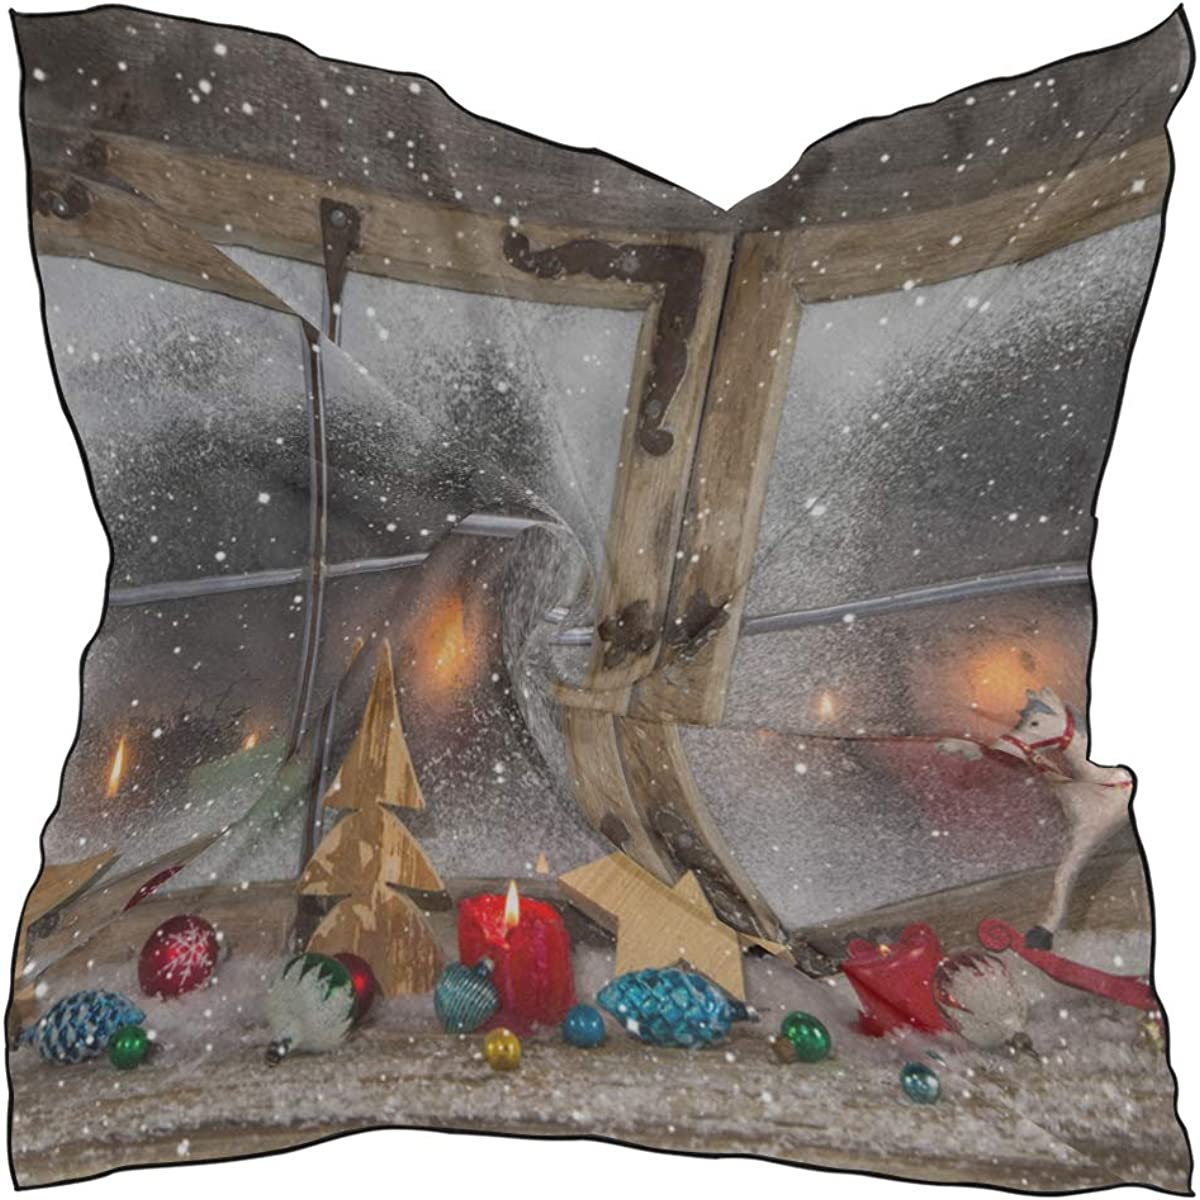 Soft Polyester Silk Outdoor Scarves Fashion Print Shiny Christmas Wooden Window Head Scarf Wrap Hair Scarf Large Women Head Scarves Multiple Ways Of Wearing Daily Decor